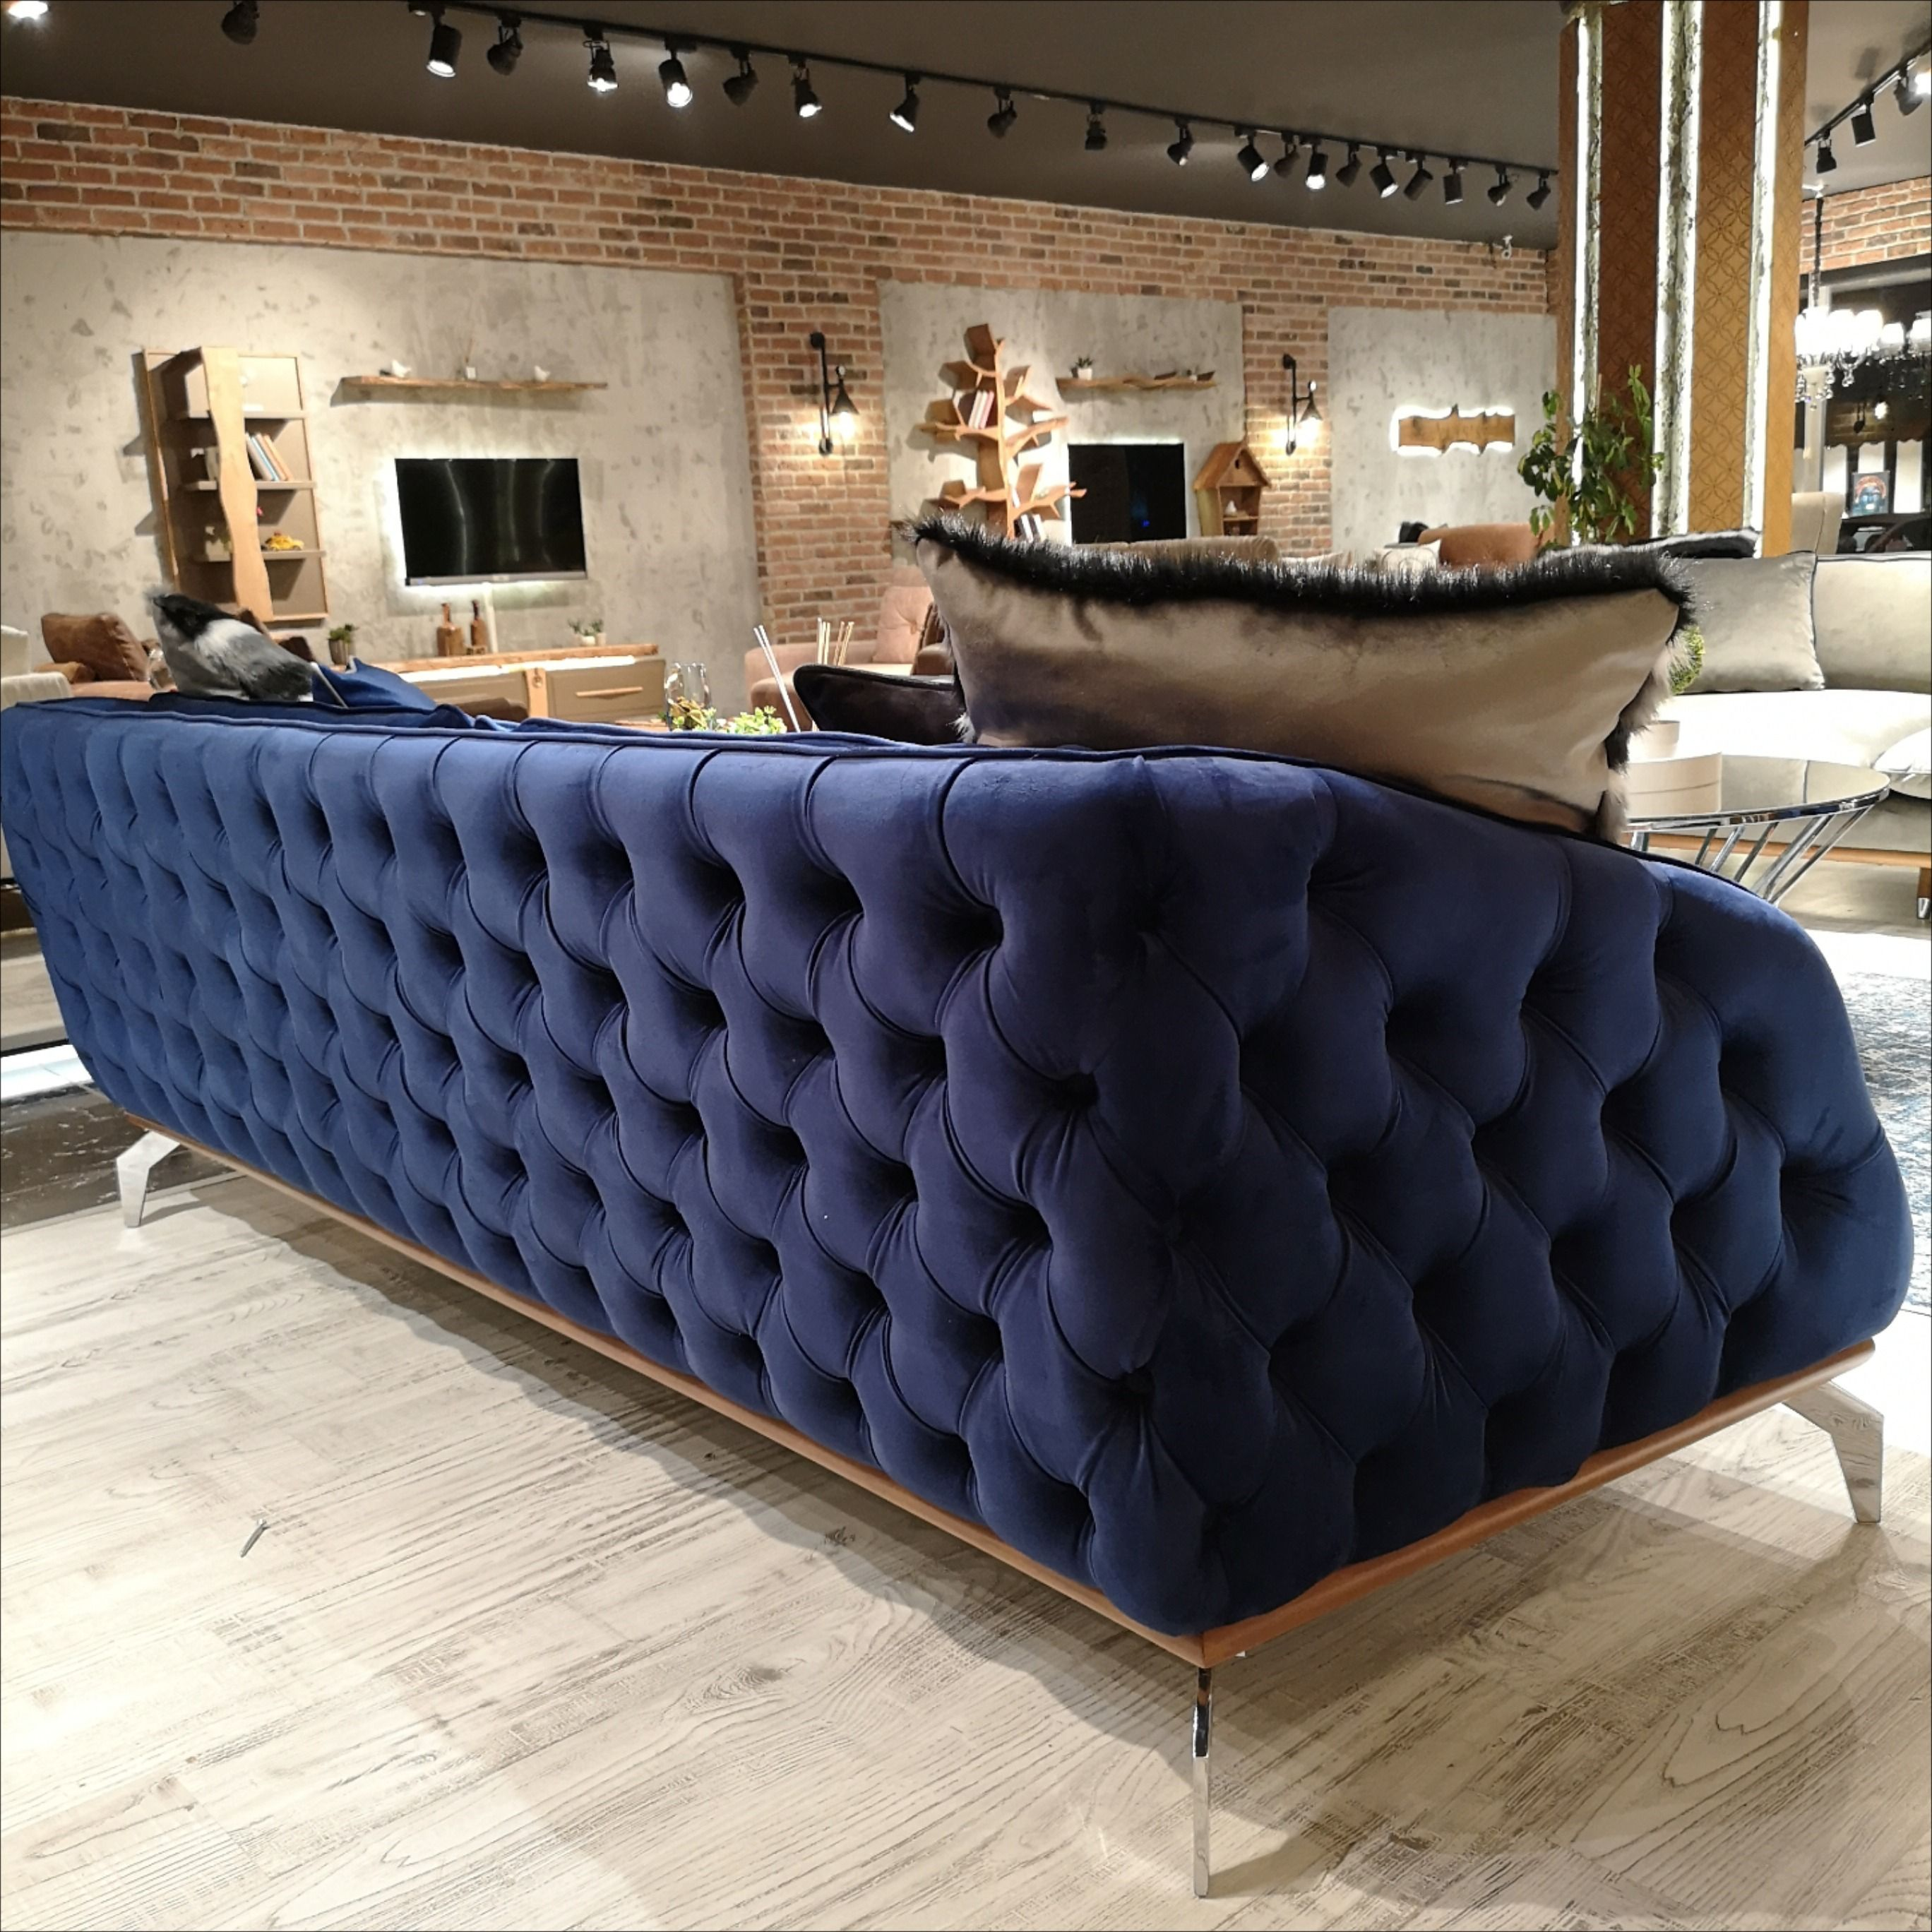 Viyana Koltuk Takimi In 2020 Chaise Lounge Decor Home Decor